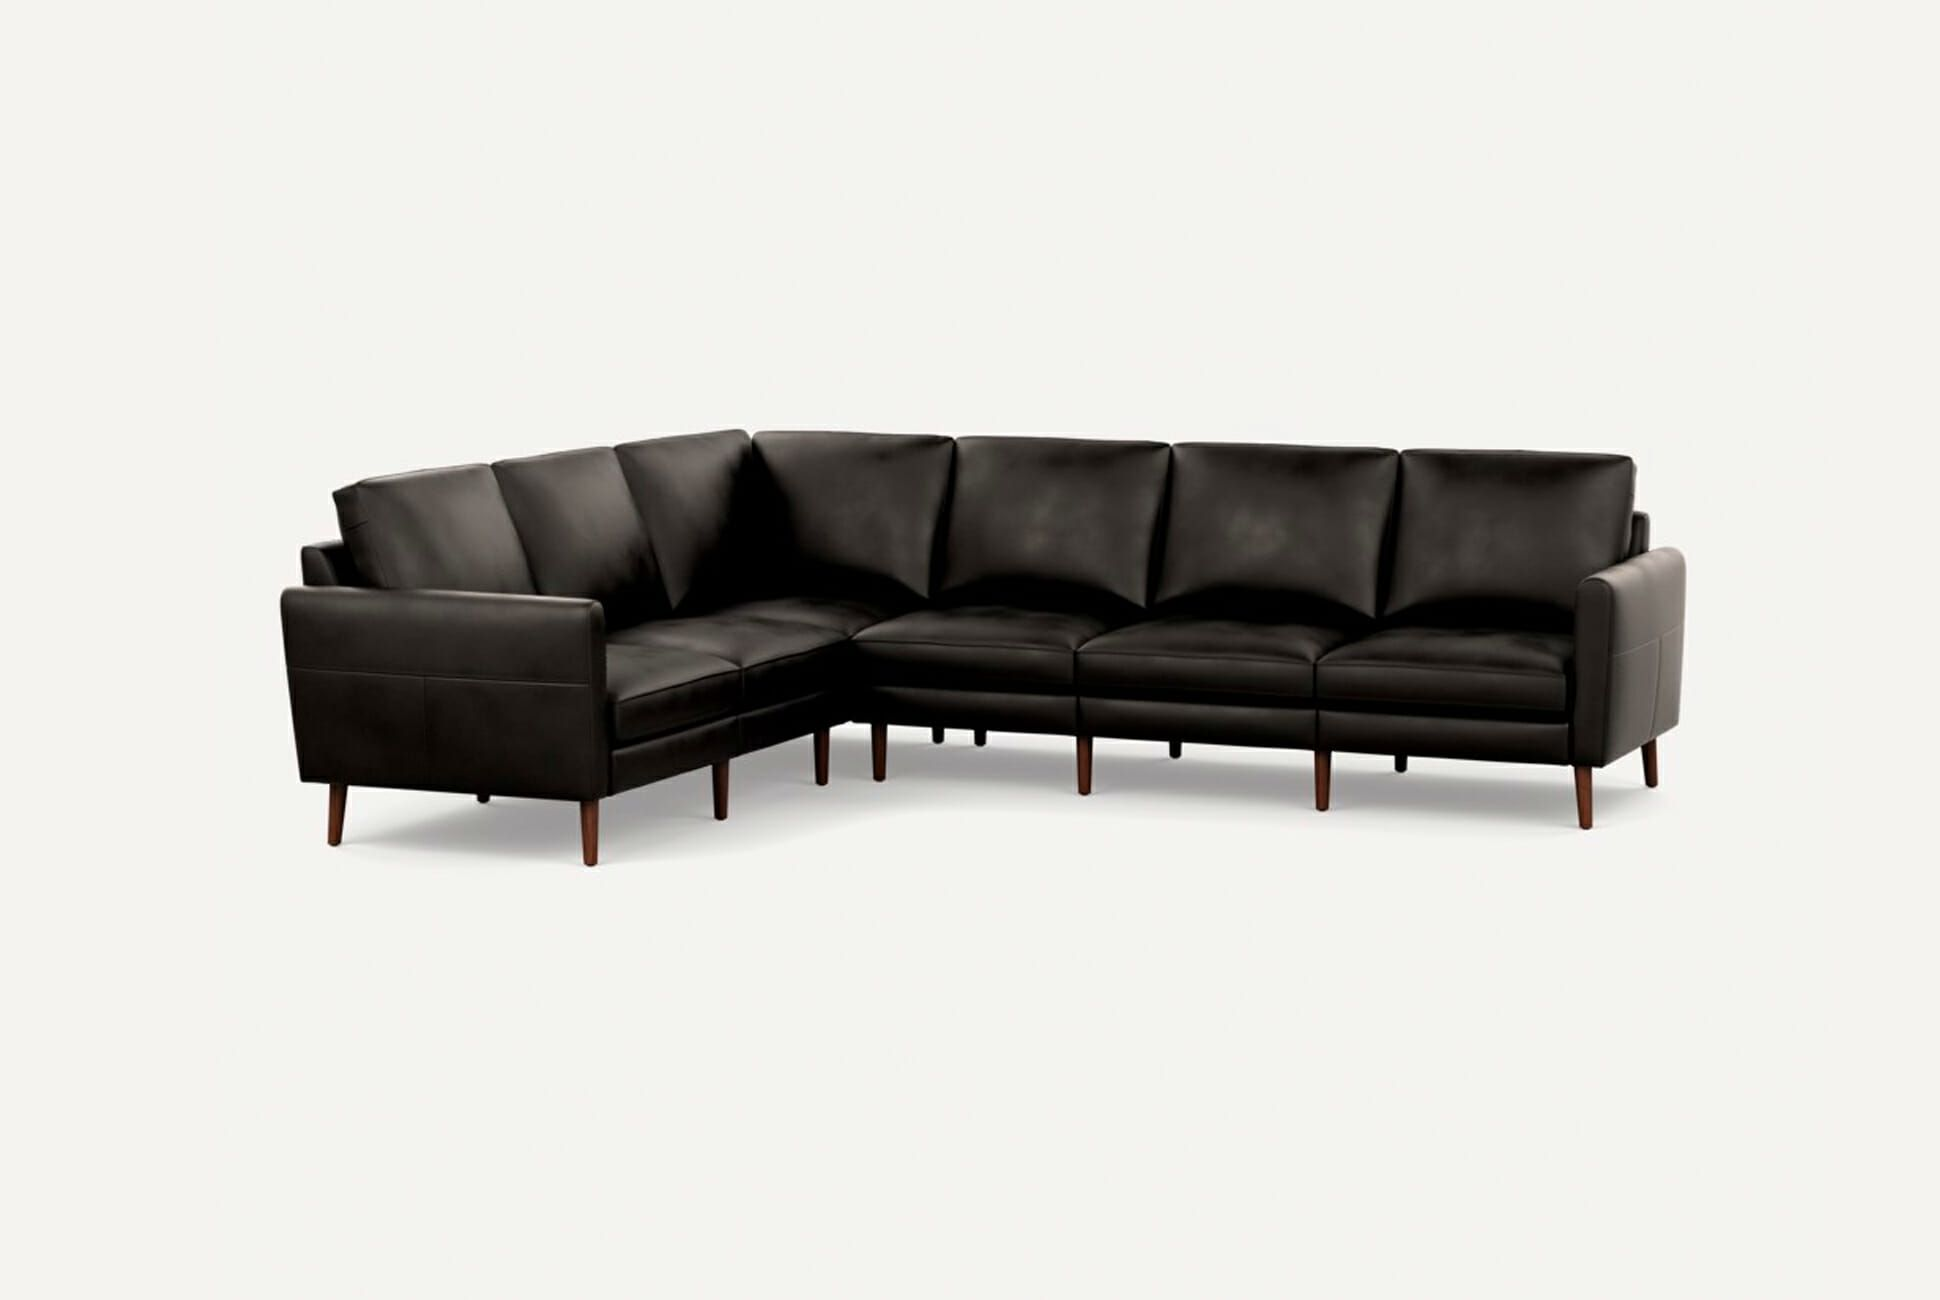 Pleasant Our Favorite Sofa On The Internet Now Comes As A Sectional Machost Co Dining Chair Design Ideas Machostcouk